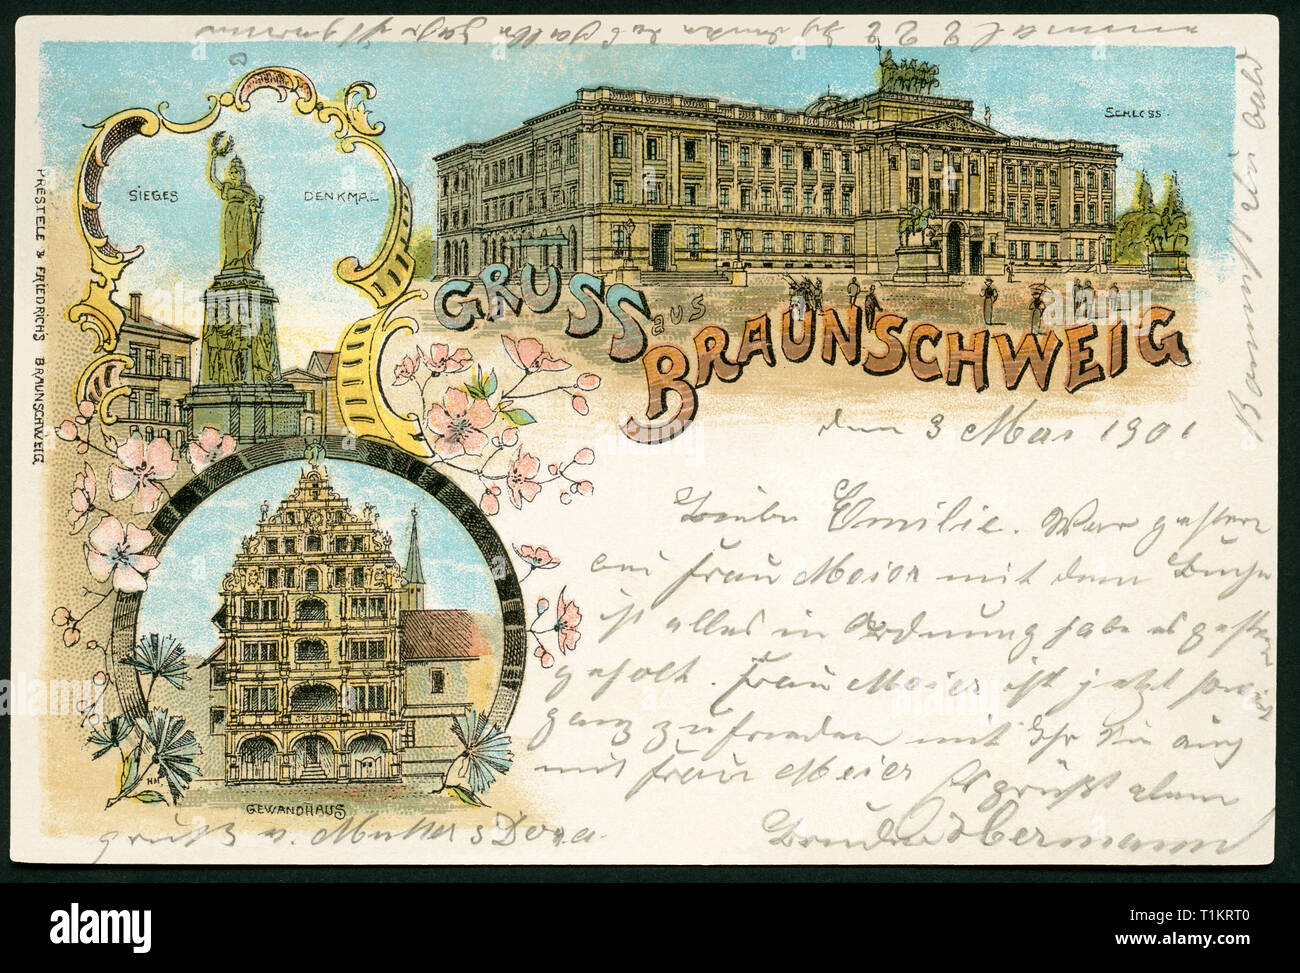 Geografia / viaggi, Germania, Bassa Sassonia, Brunswick, cartolina, inviato 1901., Additional-Rights-Clearance-Info-Not-Available Immagini Stock